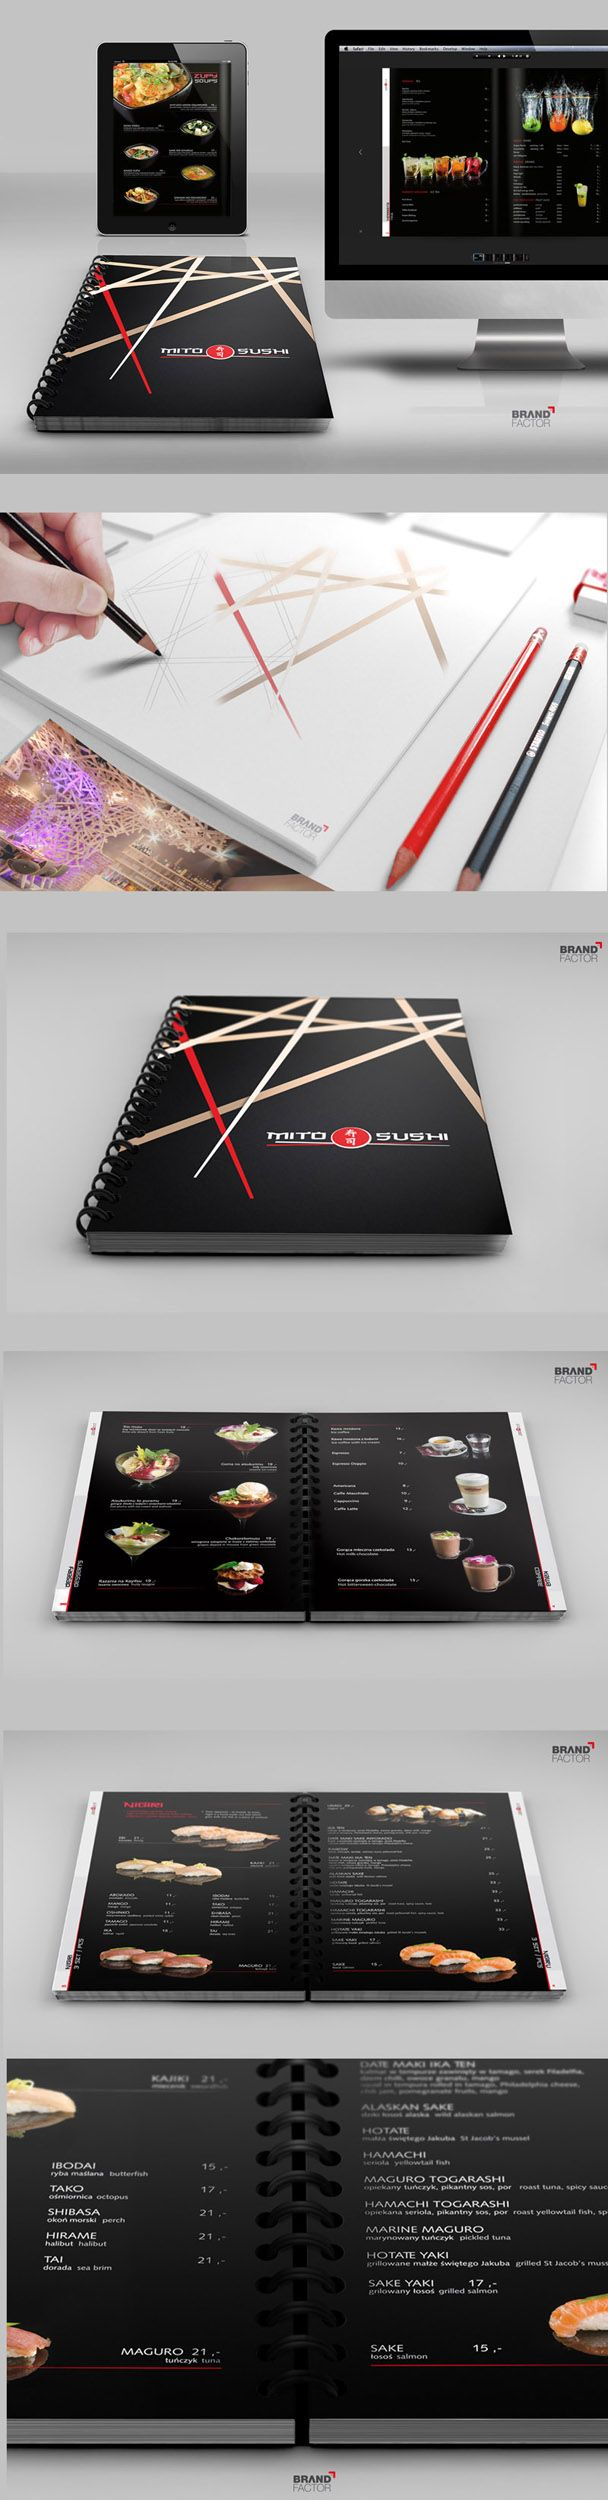 menu drukowane oraz on-line dla renomowanej gdańskiej restauracji MITO SUSHI  #menu , #restaurant  #sushi  #gdansk  #brochure  #design  #print  #layout  #corporate  #creative  #cover  #spirala  #graphics  #katalog  #agency  #brandfactor  #advertising #projekty #logo #projektowanie #WebDesign #web #digital-marketing #marketing